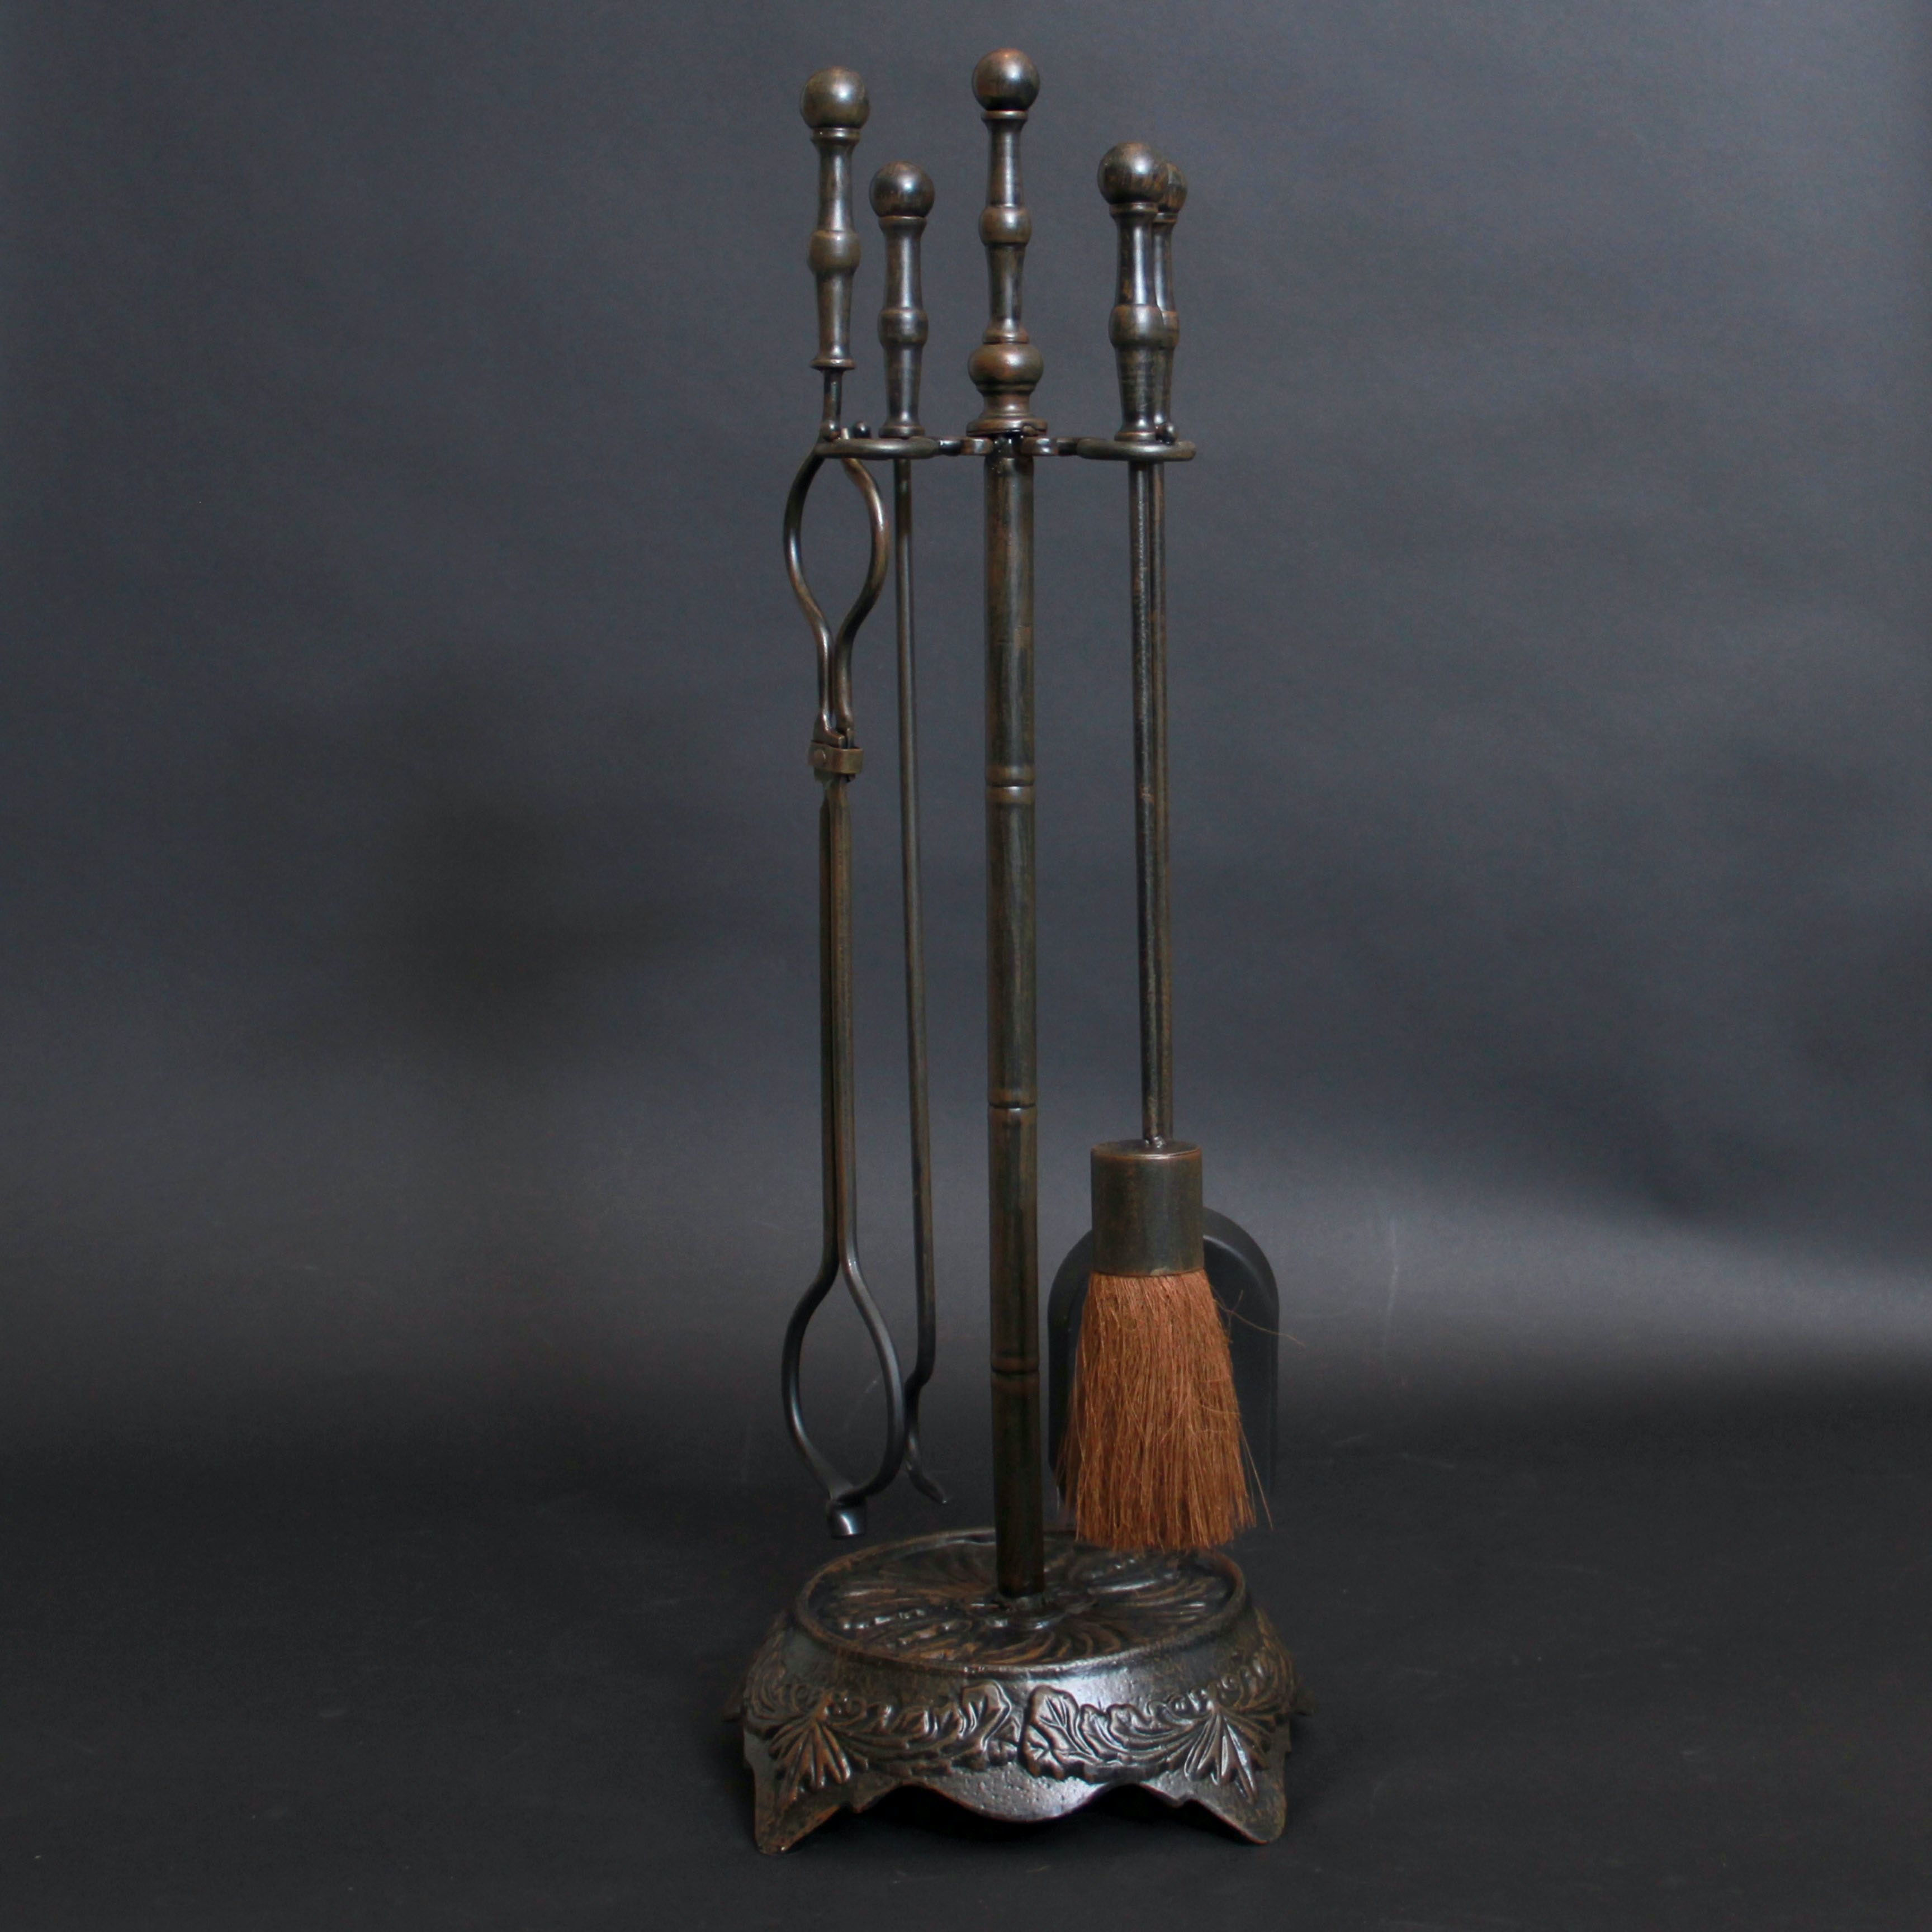 southern living at home wellesley fireplace tools ebth